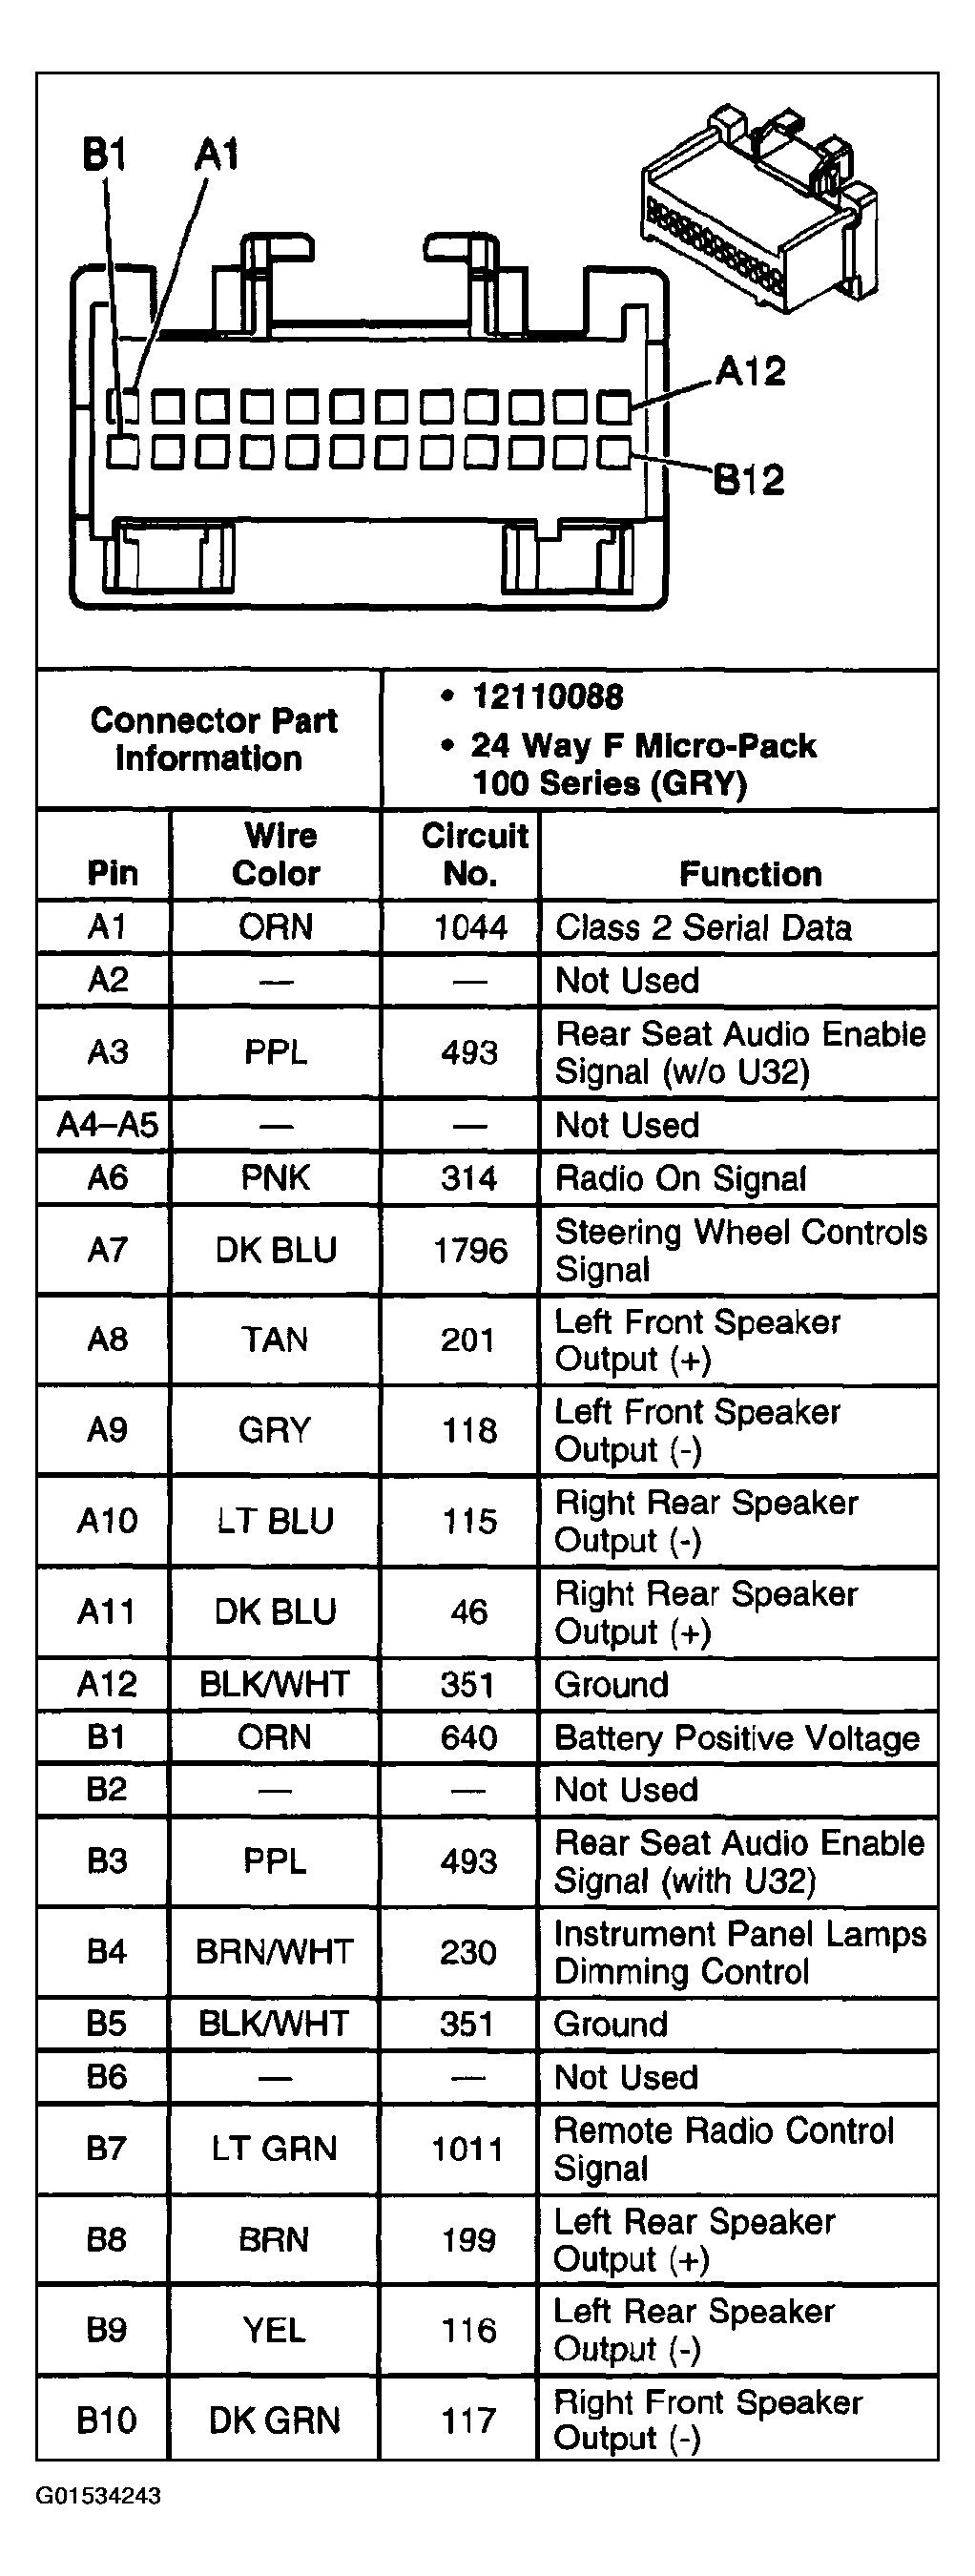 Stereo Wiring Diagram For 2000 Chevy Silverado -Wire For 100 Sub Panel  Diagram | Begeboy Wiring Diagram Source